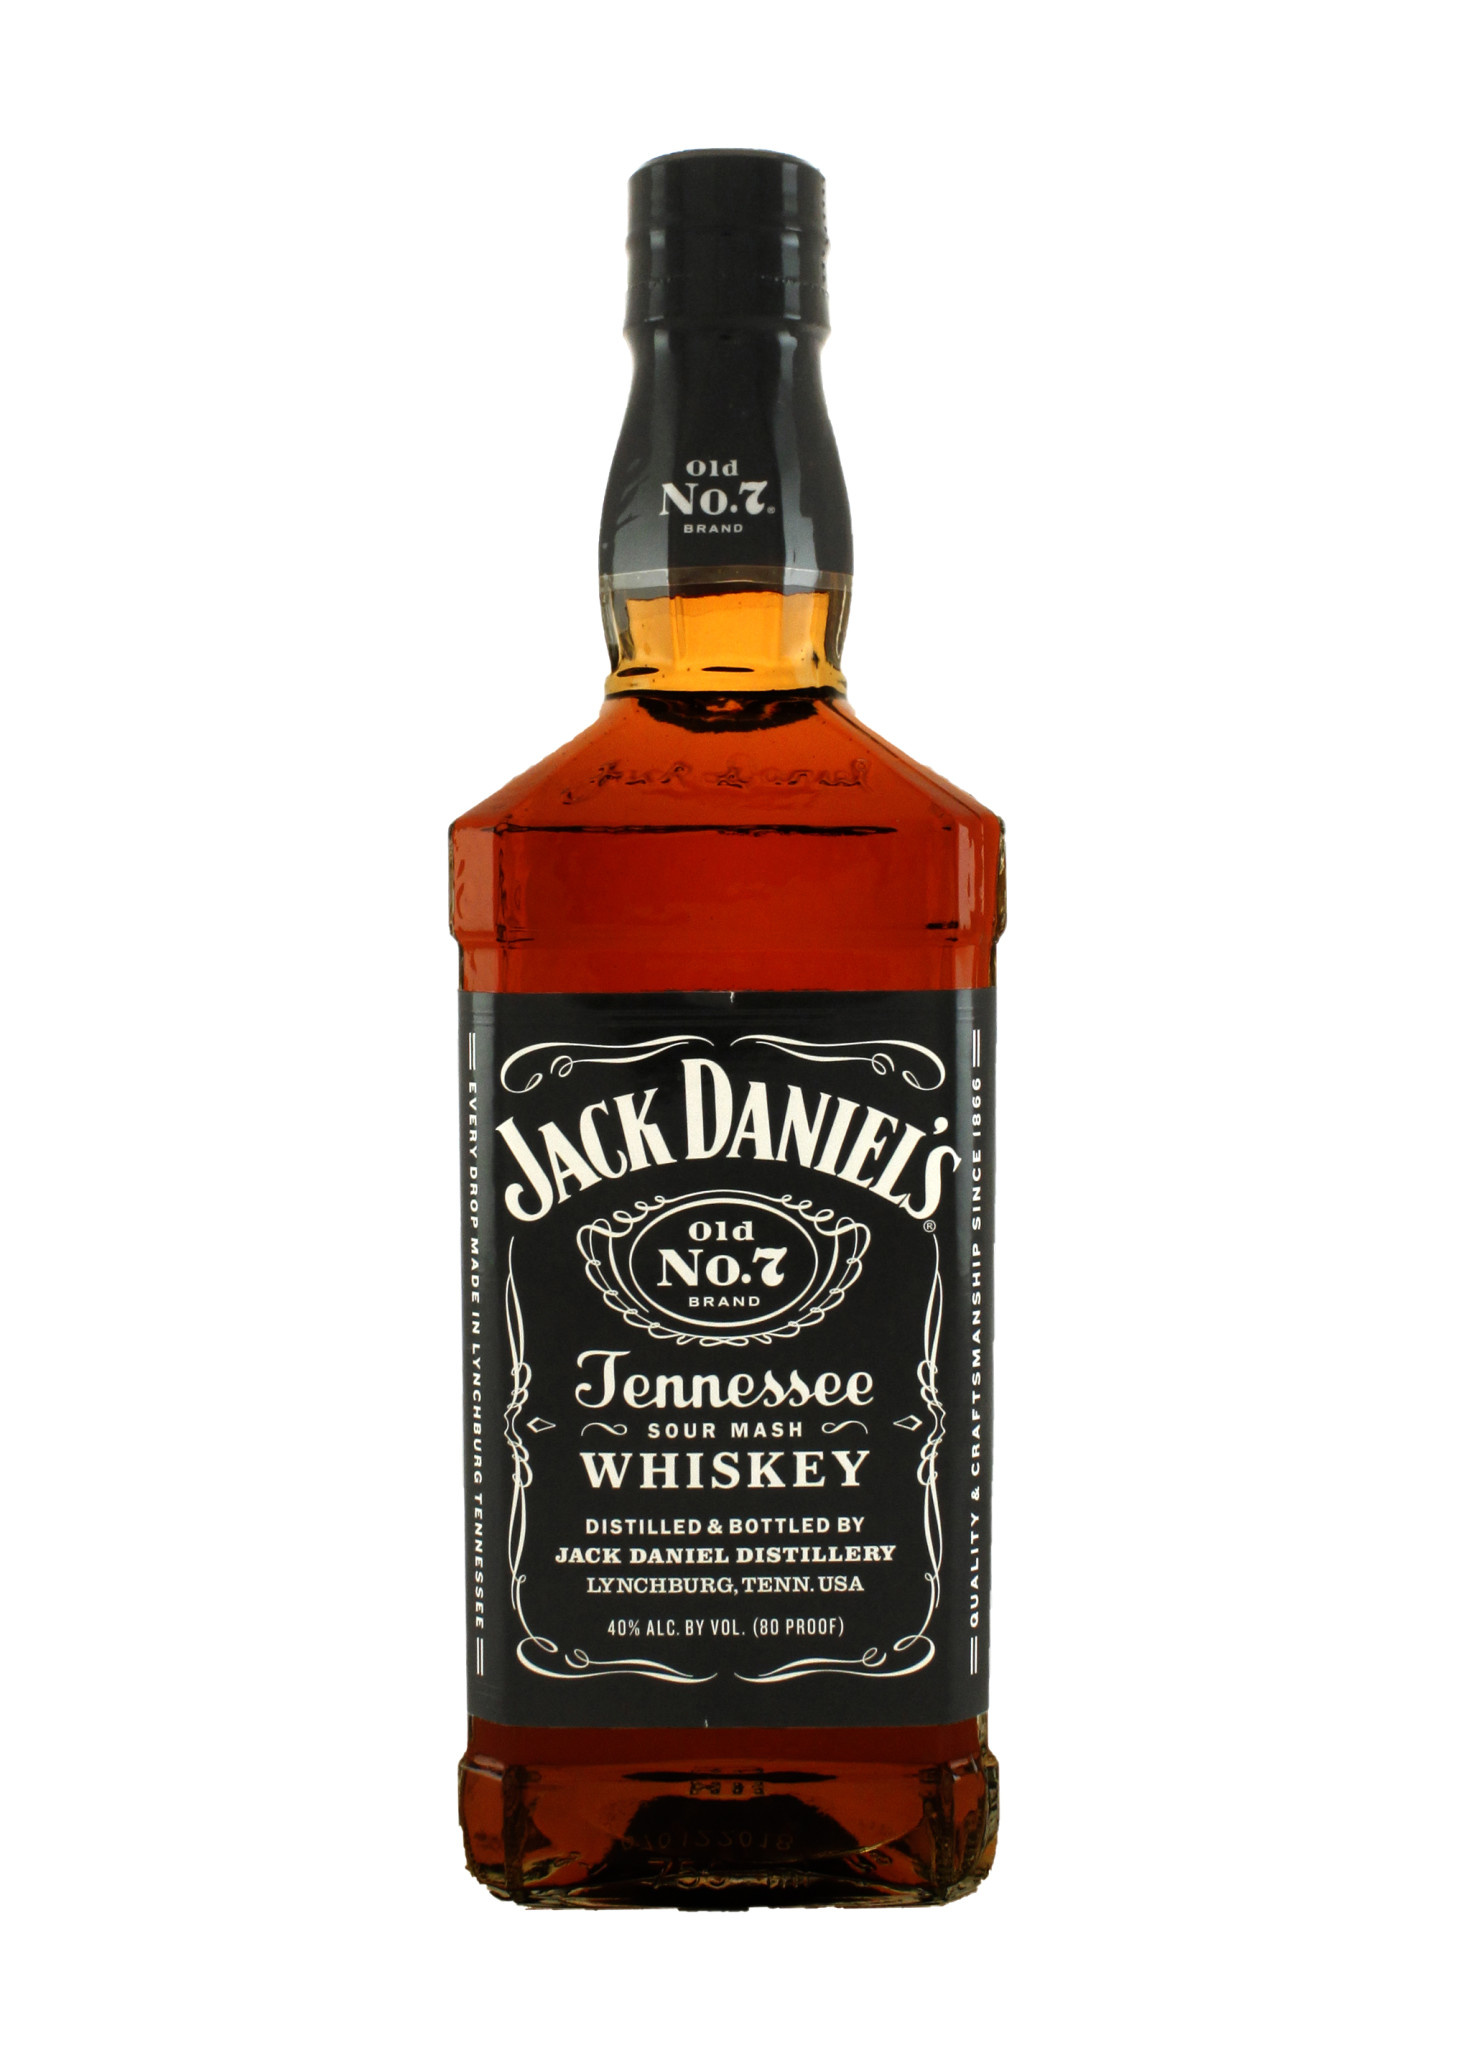 Jack Daniel's Old No. 7 Tennessee Whiskey, Lynchburg, Tennessee